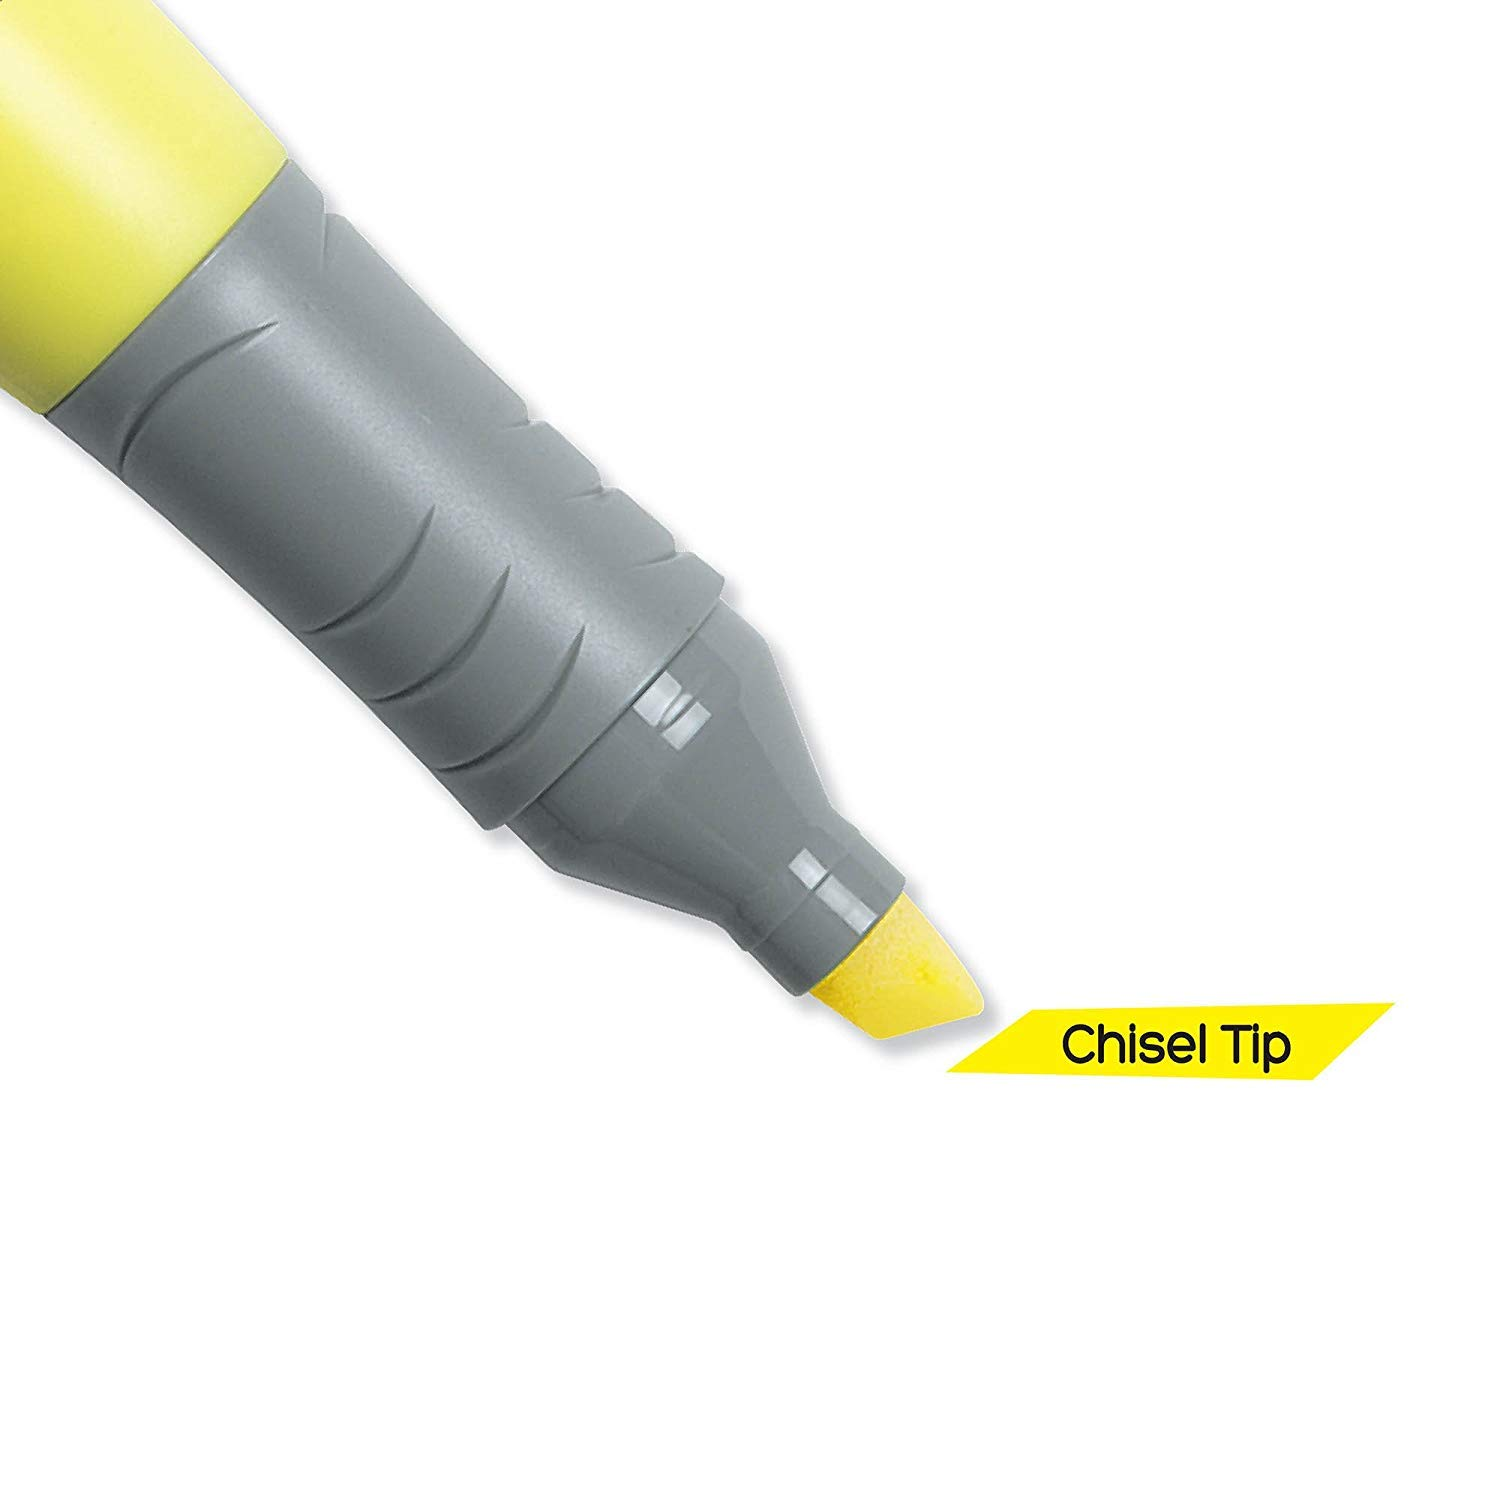 BIC Brite Liner Grip Highlighter, Tank, Chisel Tip, Yellow, 12-Count - 2 Pack by BIC (Image #4)